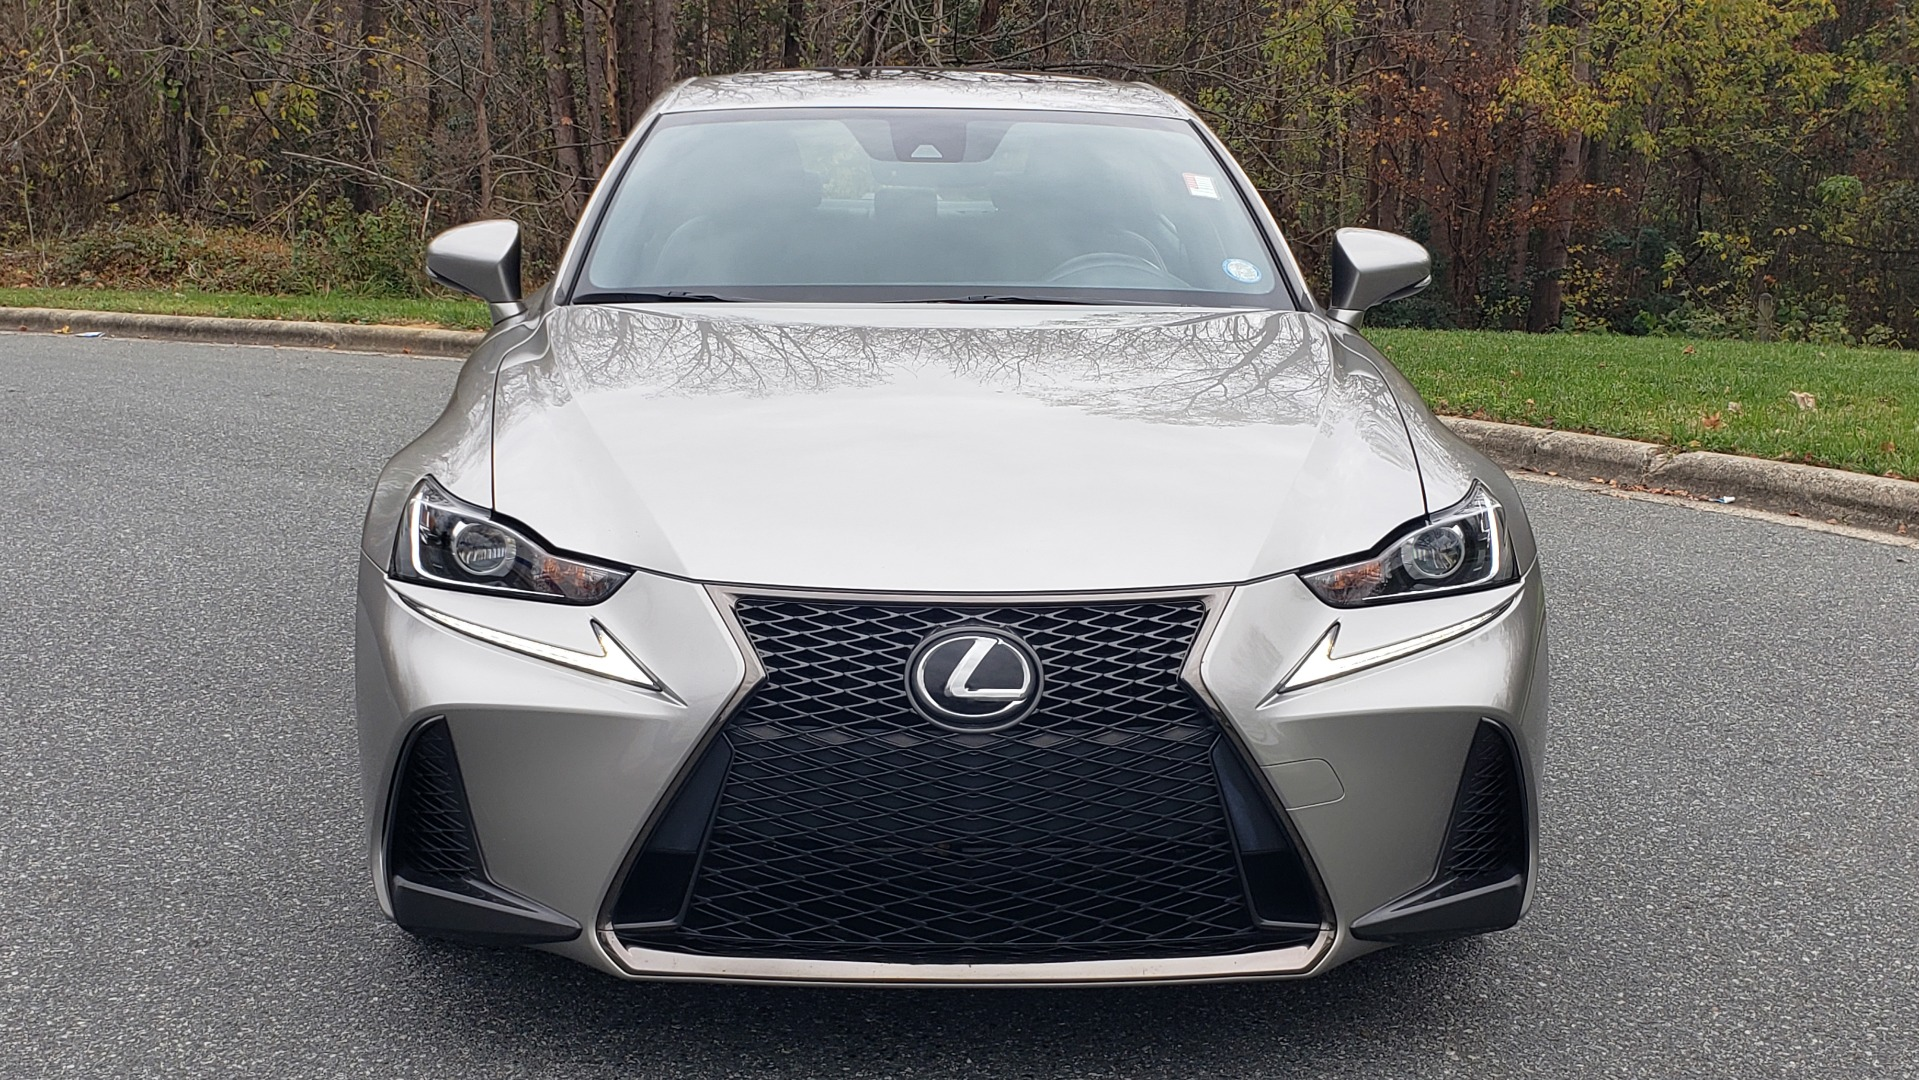 Used 2017 Lexus IS 200 TURBO F-SPORT / BSM / SUNROOF / VENT SEATS / REARVIEW for sale Sold at Formula Imports in Charlotte NC 28227 24